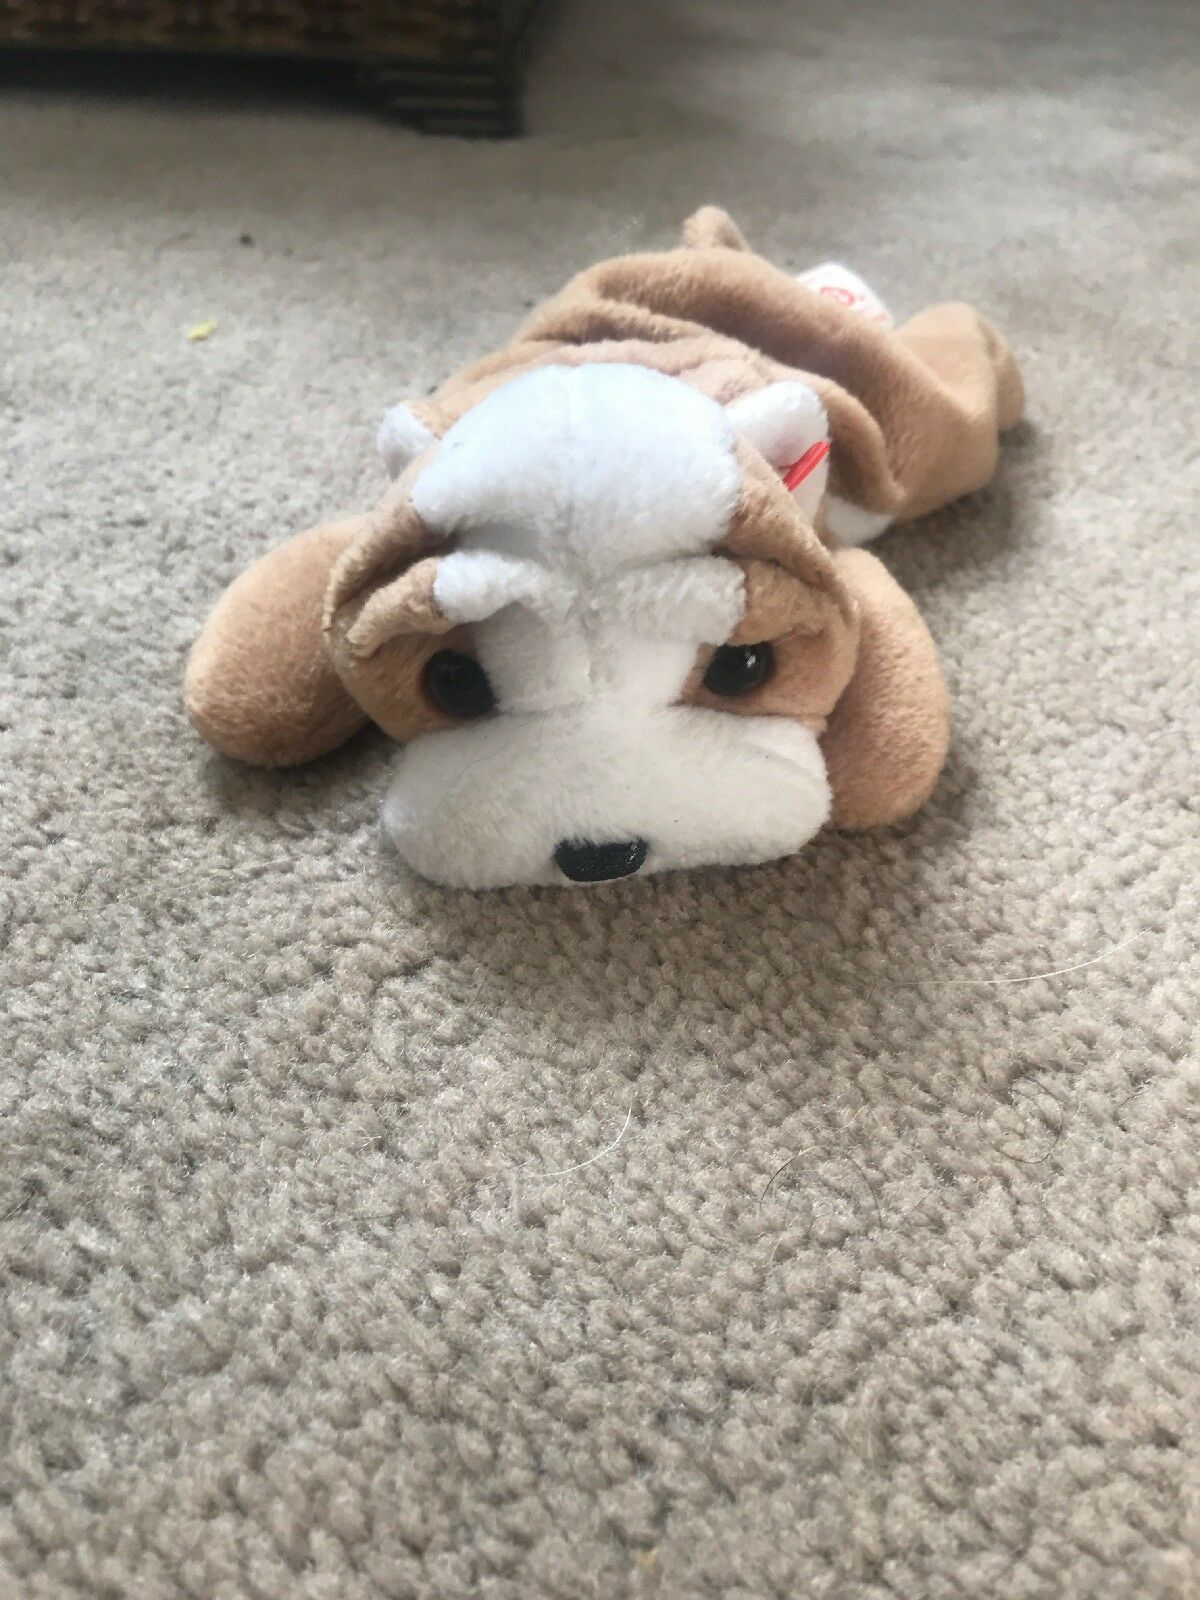 WRINKLES the Bulldog - TY Beanie Baby No Hang Tag 1 of 7FREE Shipping See  More 3feeaa7c765a